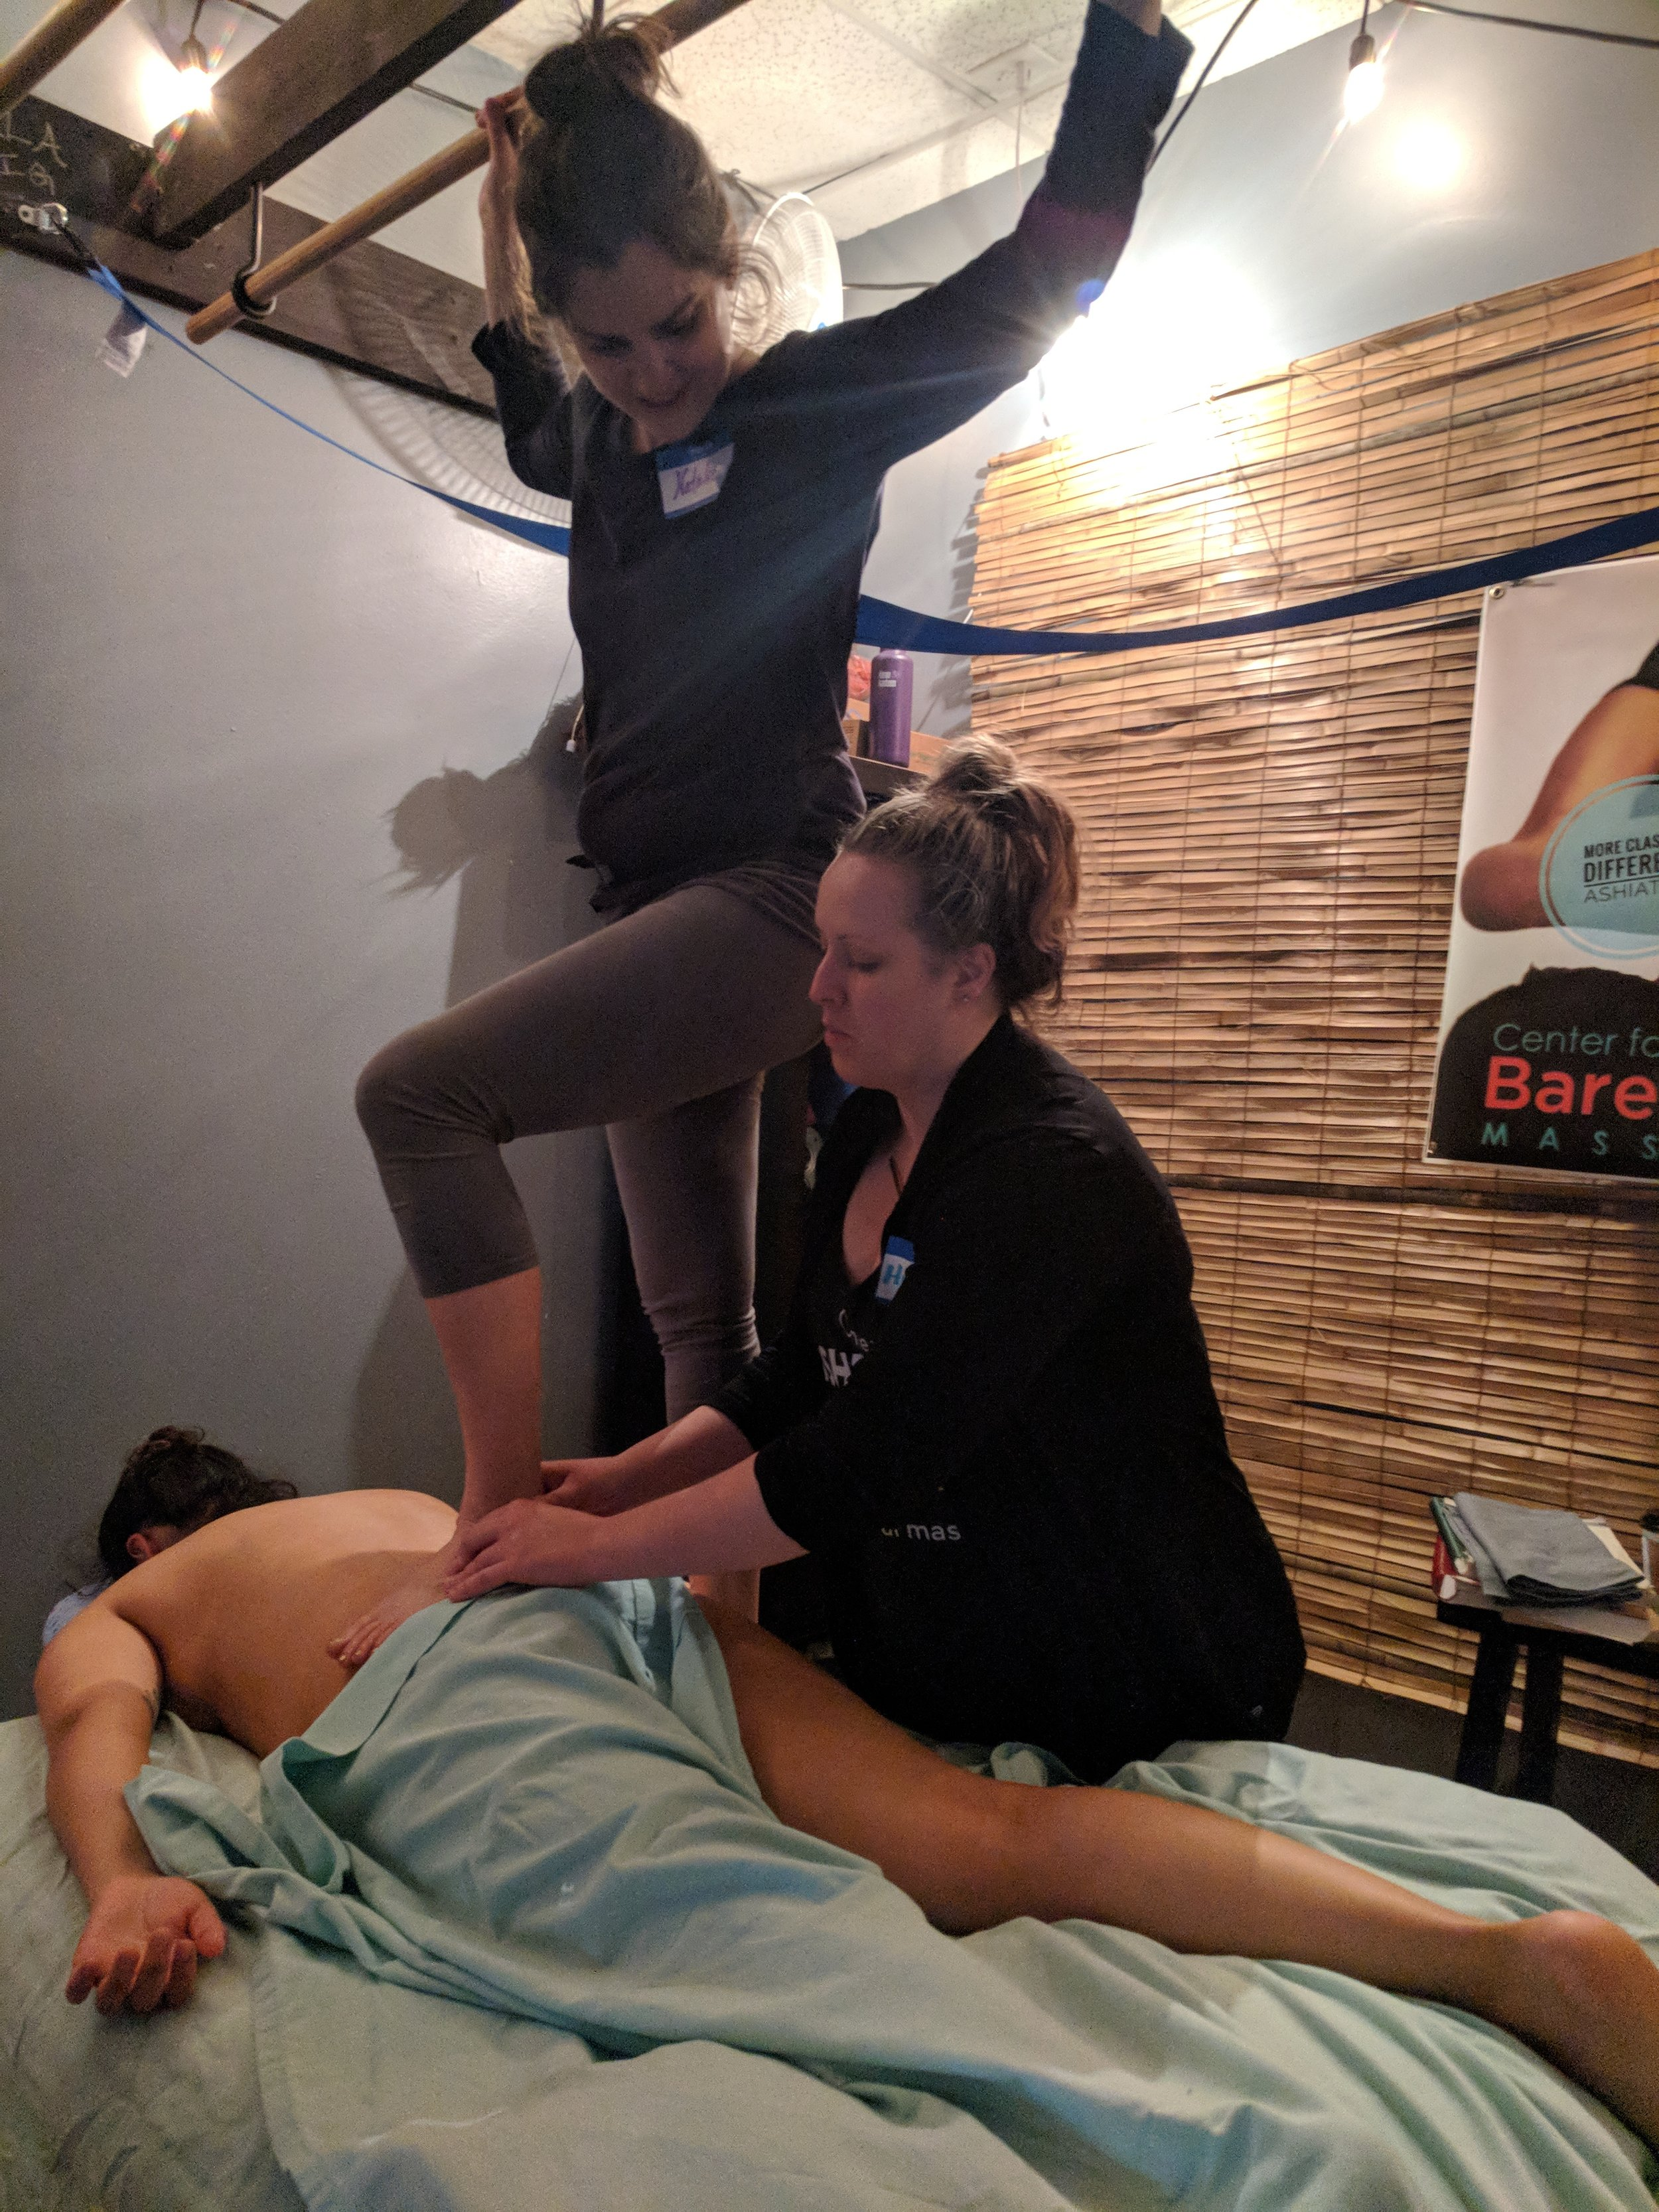 We don't just teach Ashiatsu… we live and breathe it. - If you've heard of barefoot massage in the last 10 years - chances are the waves we have been making in Texas are what rippled into your point of view!The Texas Ashiatsu scene is a big part of the forward momentum across the growing barefoot massage industry. Our Texas Ashiatsu Instructors, Jeni Spring and Hillary Arrieta, are involved with the Texas AMTA, the AFMTE, NCBTMB, and local massage school boards. We stay in touch with our profession at the state and national level so that we can help create change for the future of Barefoot Massage Therapists.We practice what we teach: as FasciAshi instructors, we continue to offer barefoot massage services to our own clients in addition to teaching continuing education courses. We believe that maintaining an active practice in what we teach keeps the material fresh, evolving, and responsive.Plus, we love the work so much that we want to continue massaging! (We'll be two feet deep in our clients muscles until we are 6 feet deep in the ground!)Learn More About Your Instructors